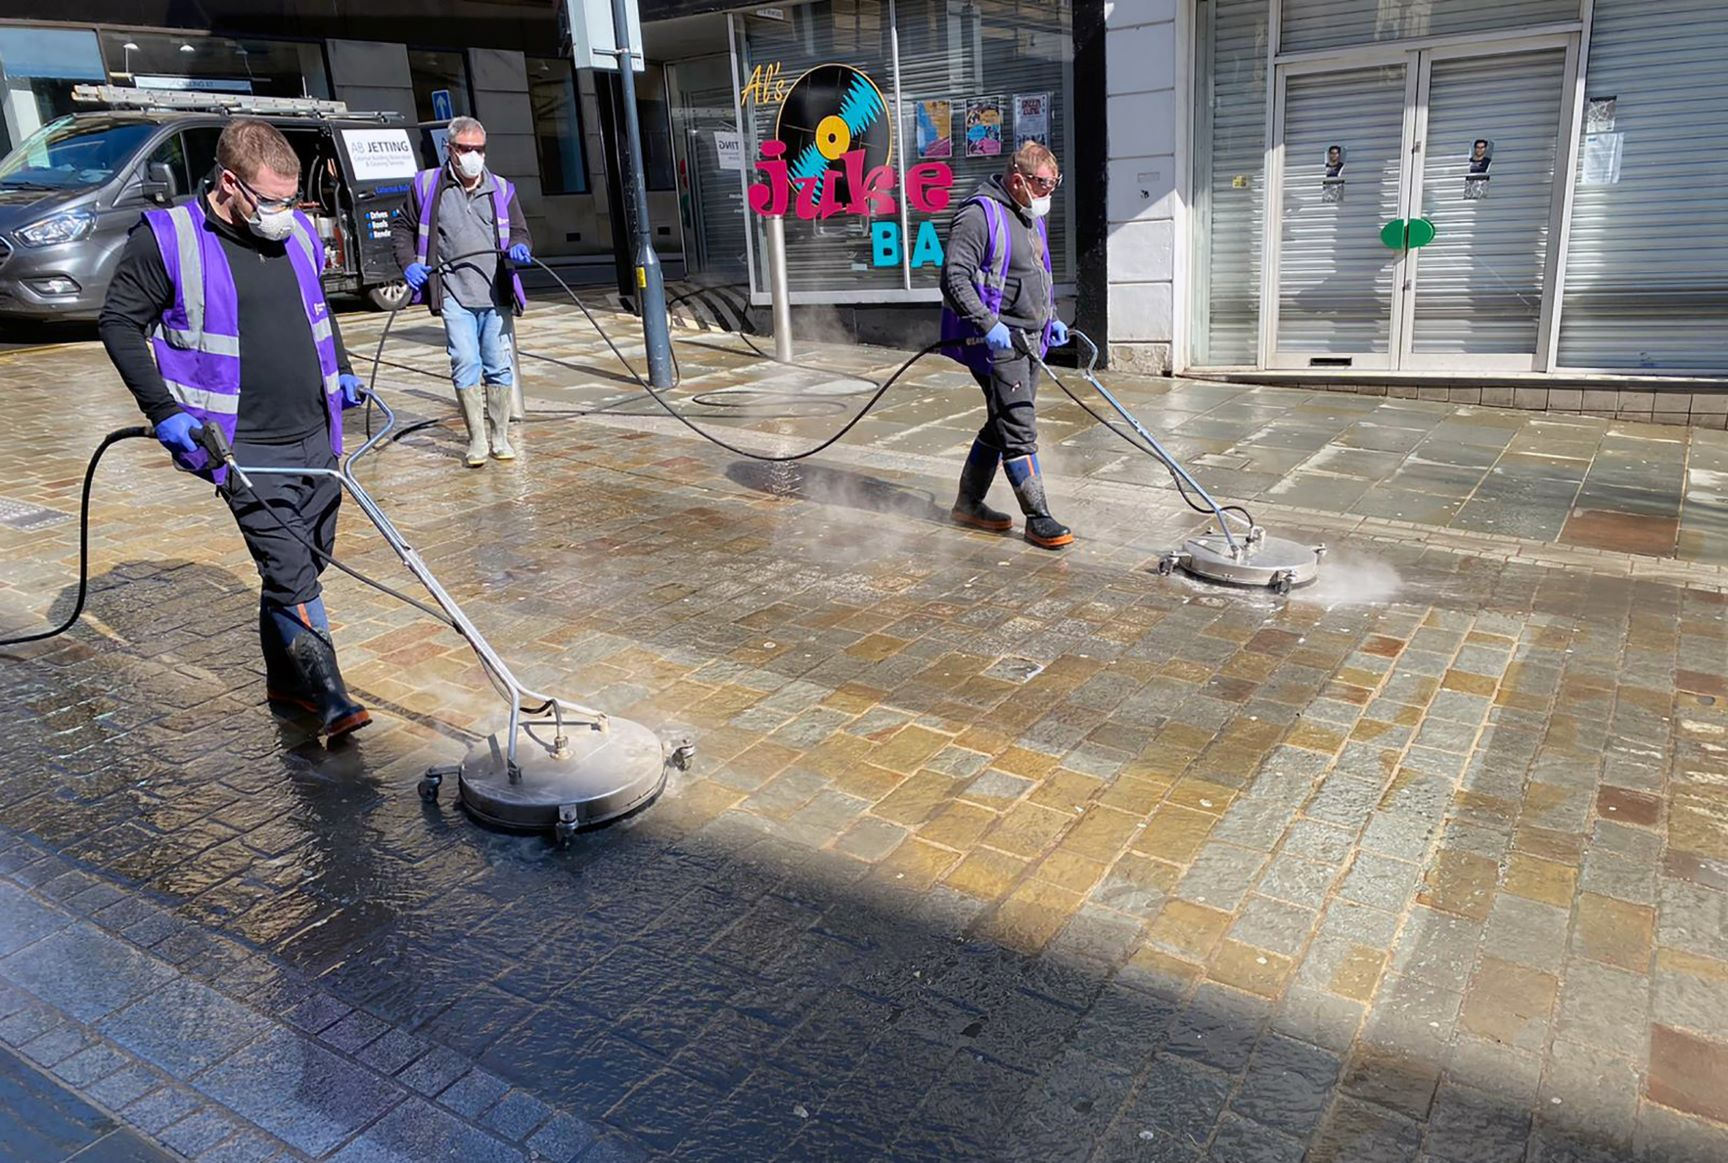 Hotwashing Mission for Streets of City